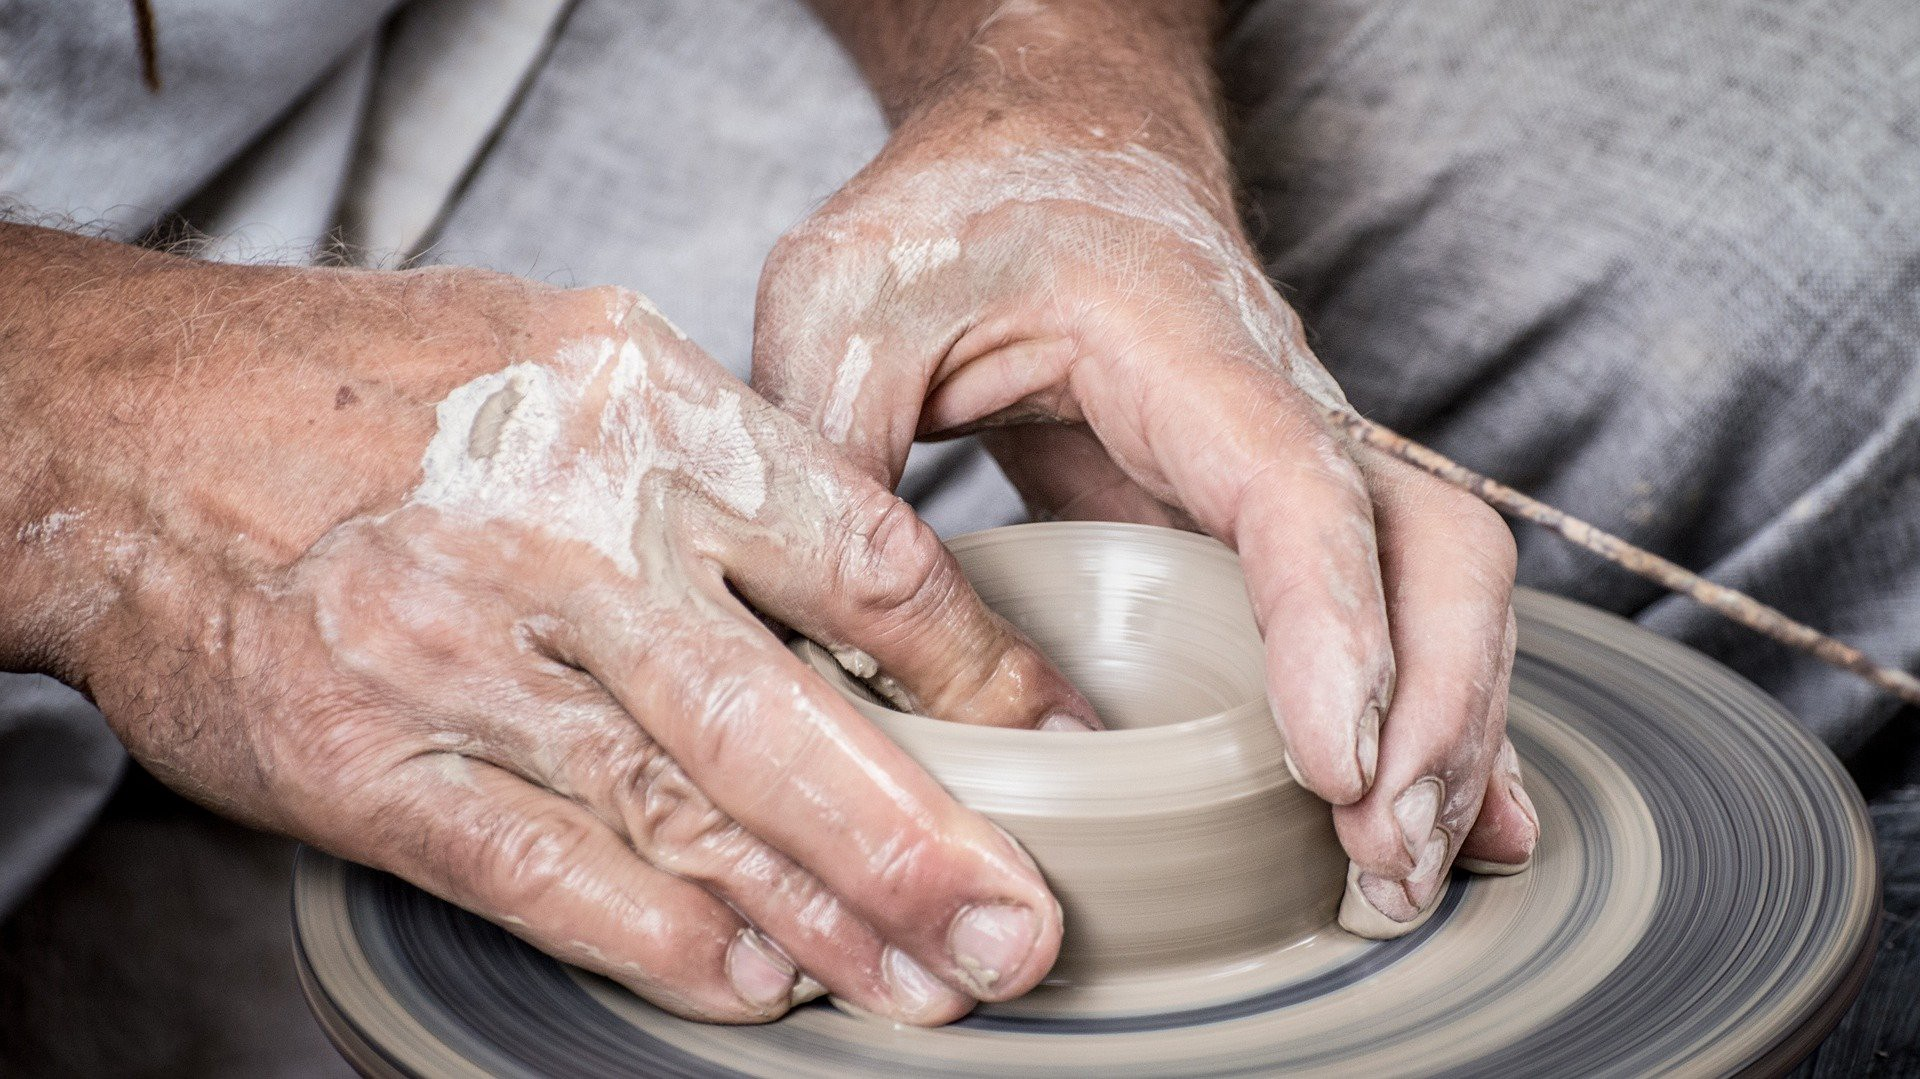 A potter's hands turn a cup or bowl on a potter's wheel.